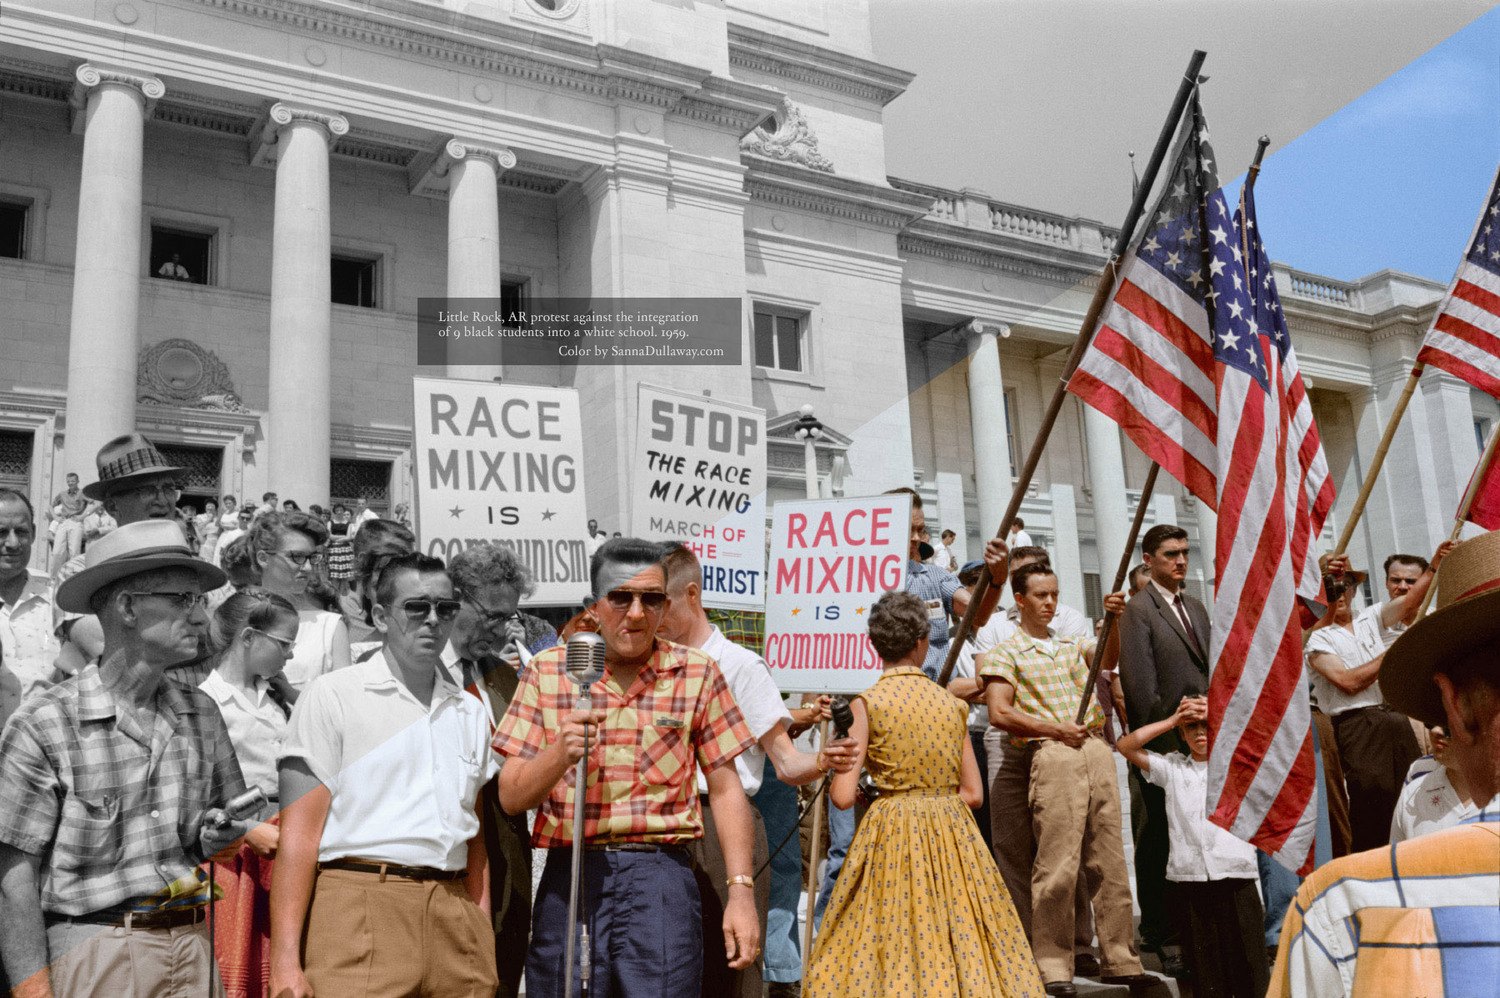 colorized_images_270814_befaft_3